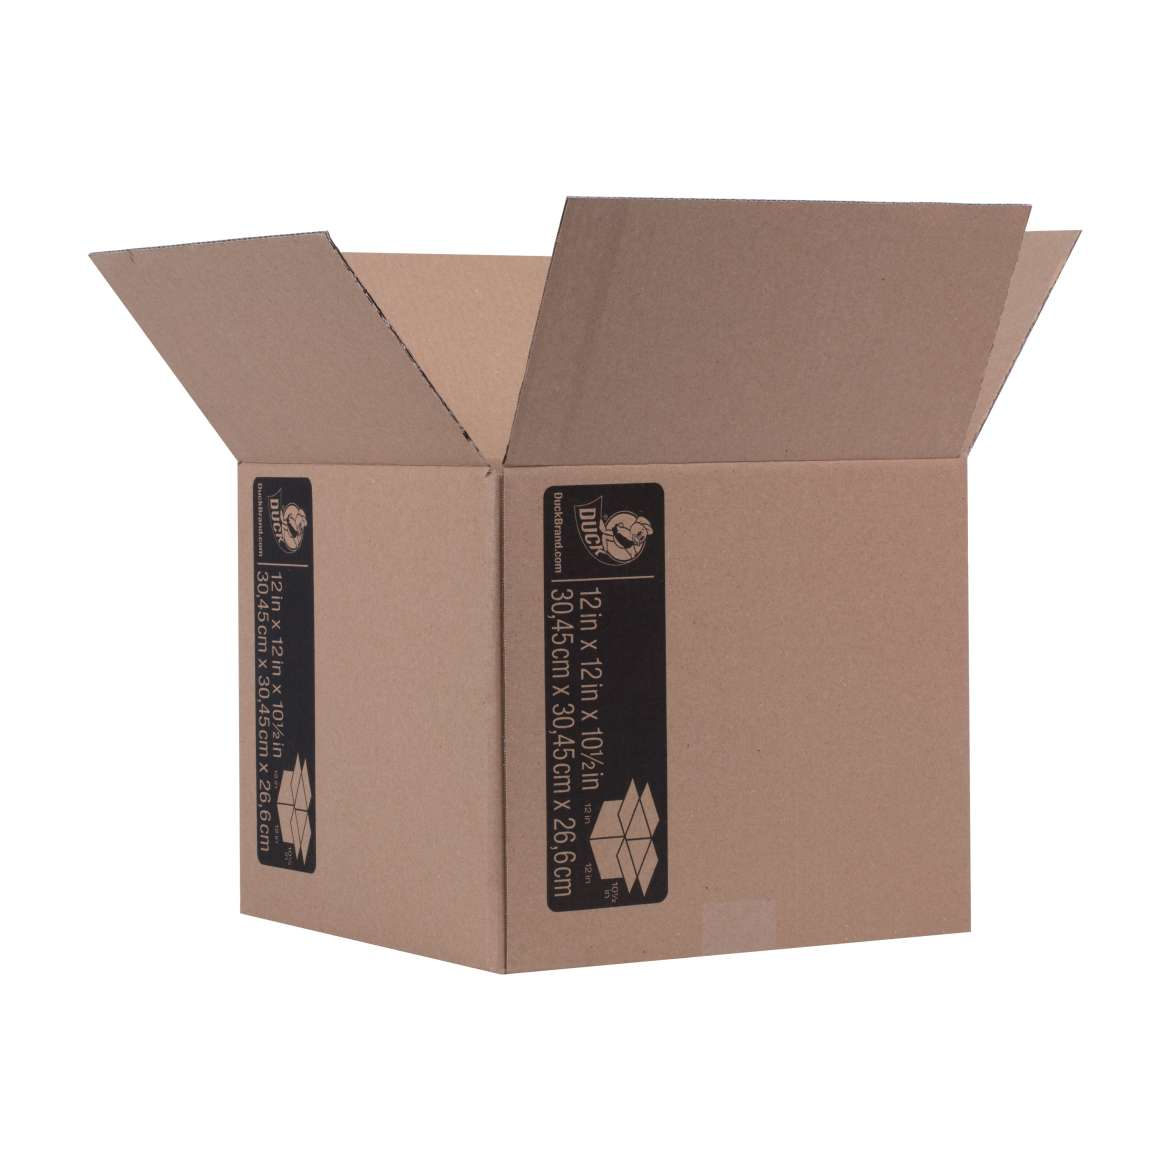 Duck® Brand Kraft Box - Brown, 12 in. x 12 in. x 10.5 in. Image